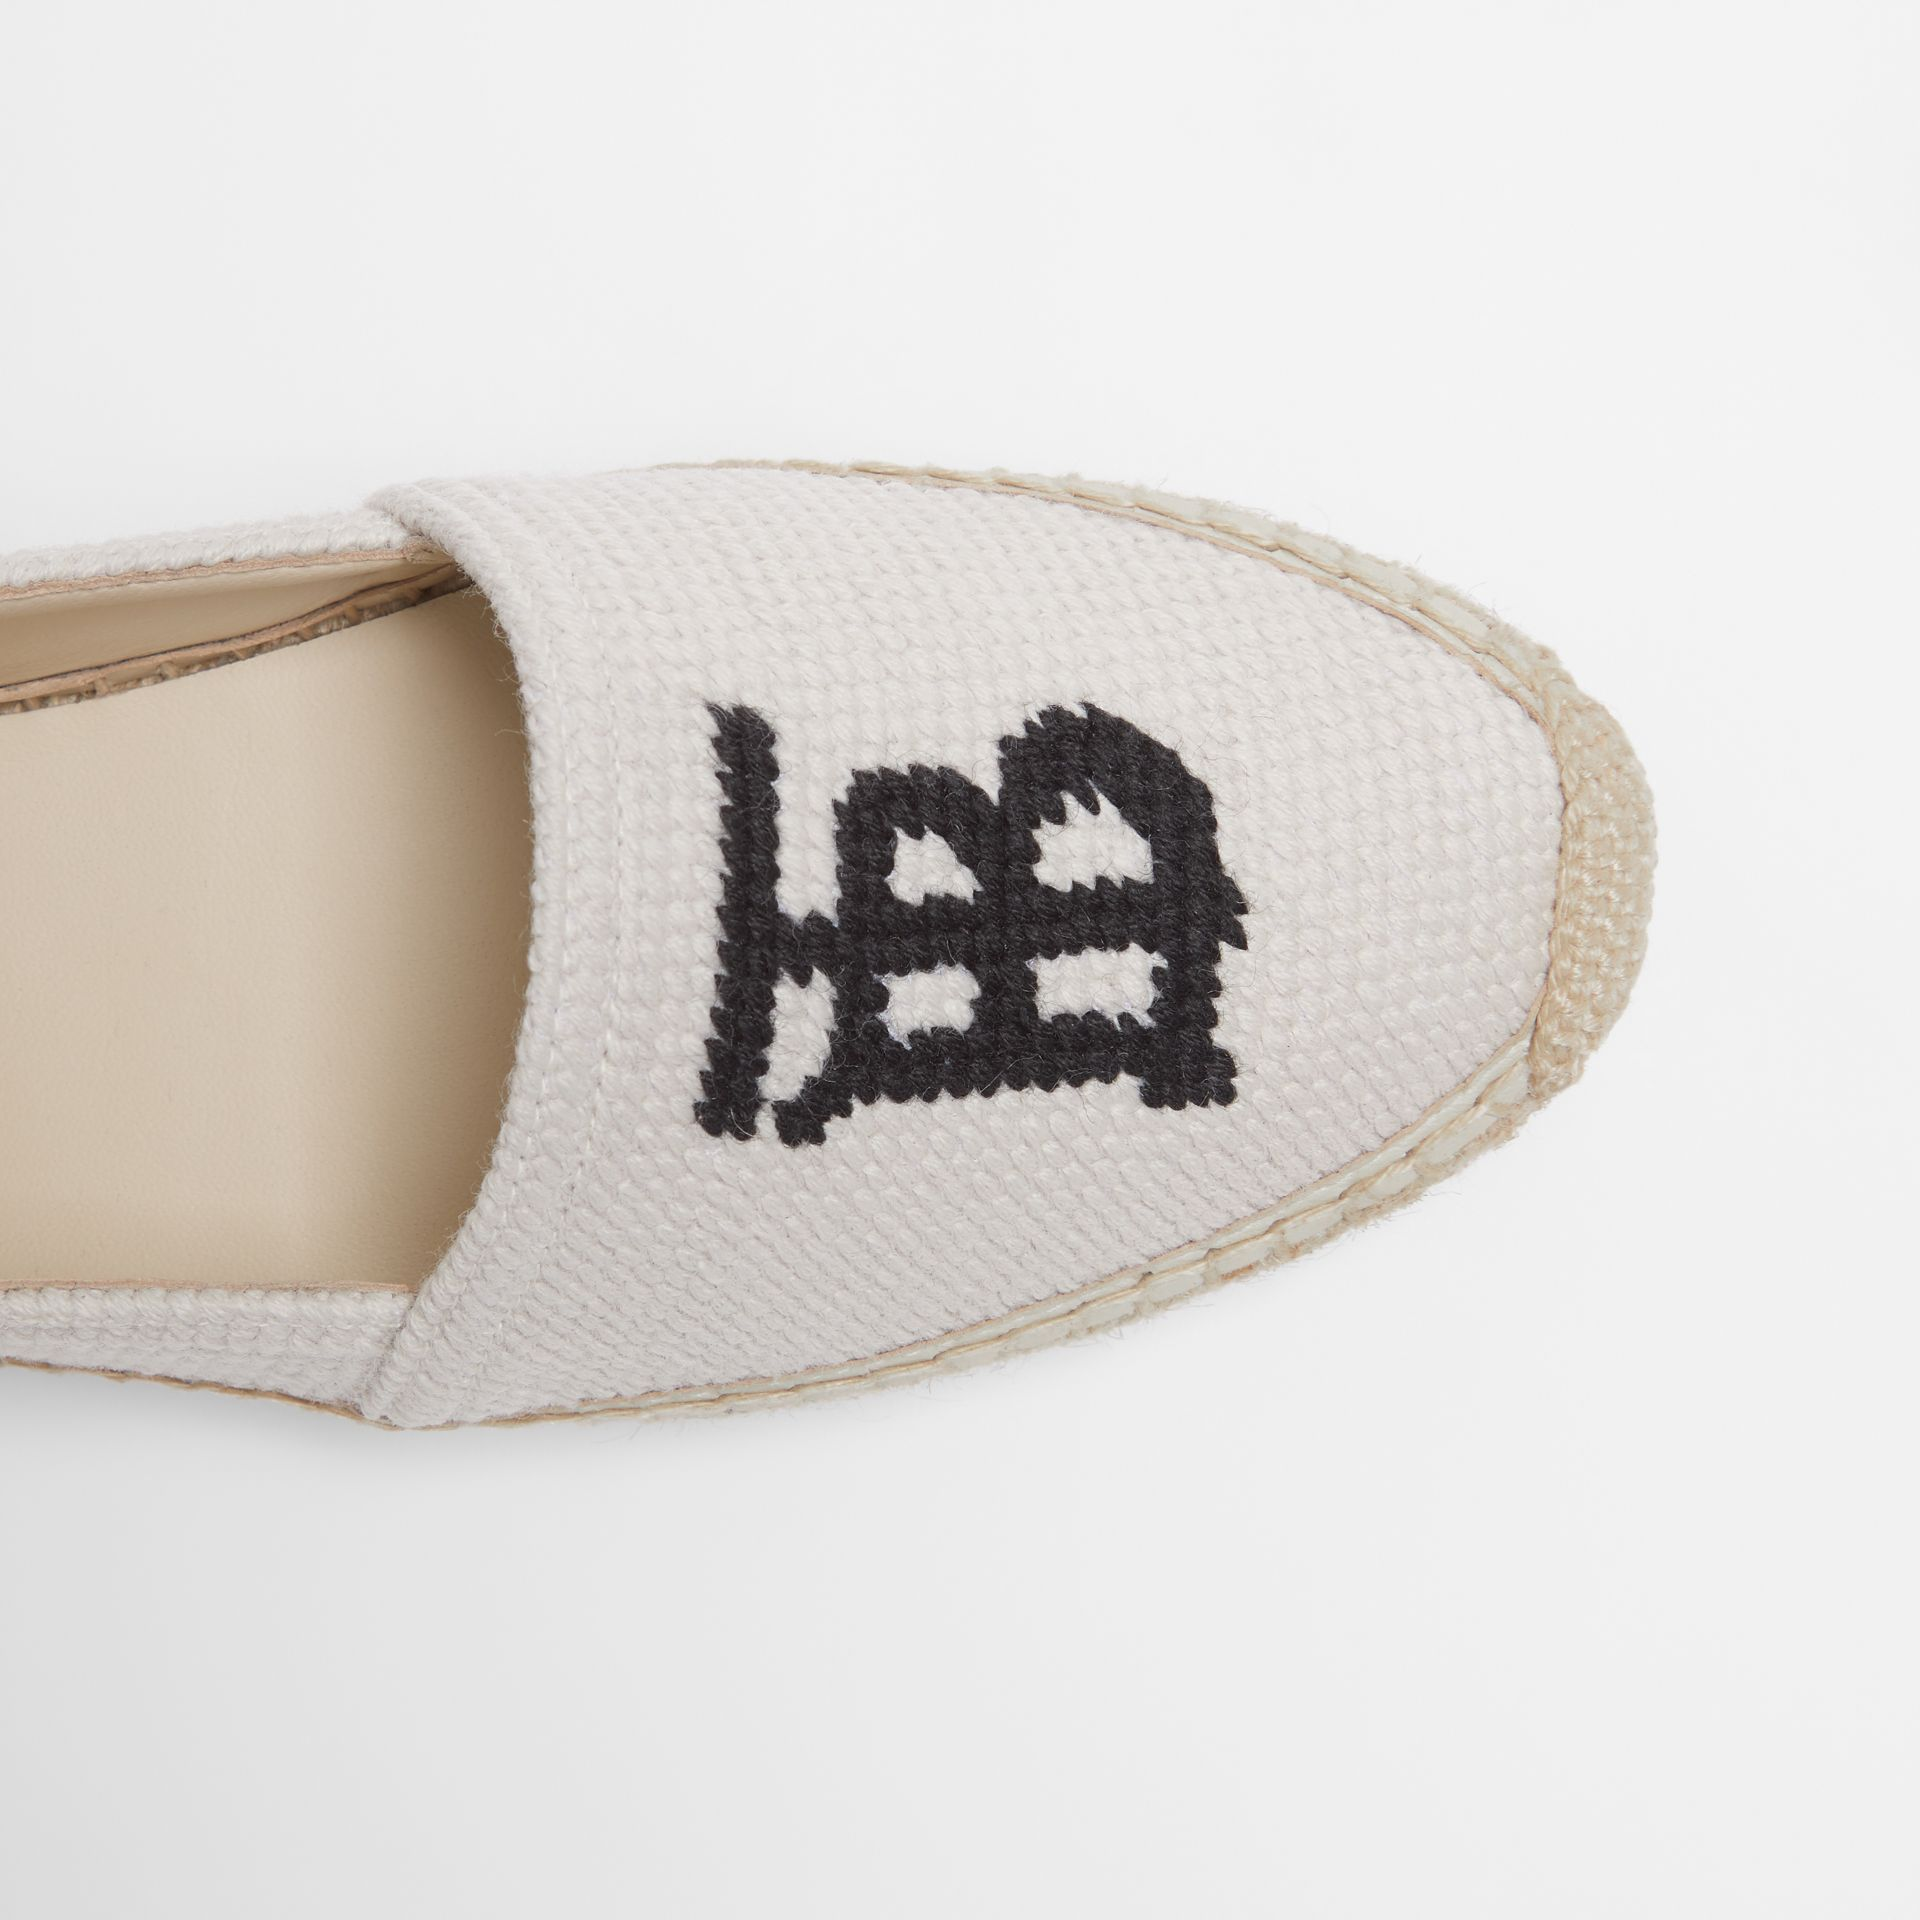 Monogram Motif Cotton and Leather Espadrilles in Ecru/black - Women | Burberry - gallery image 1